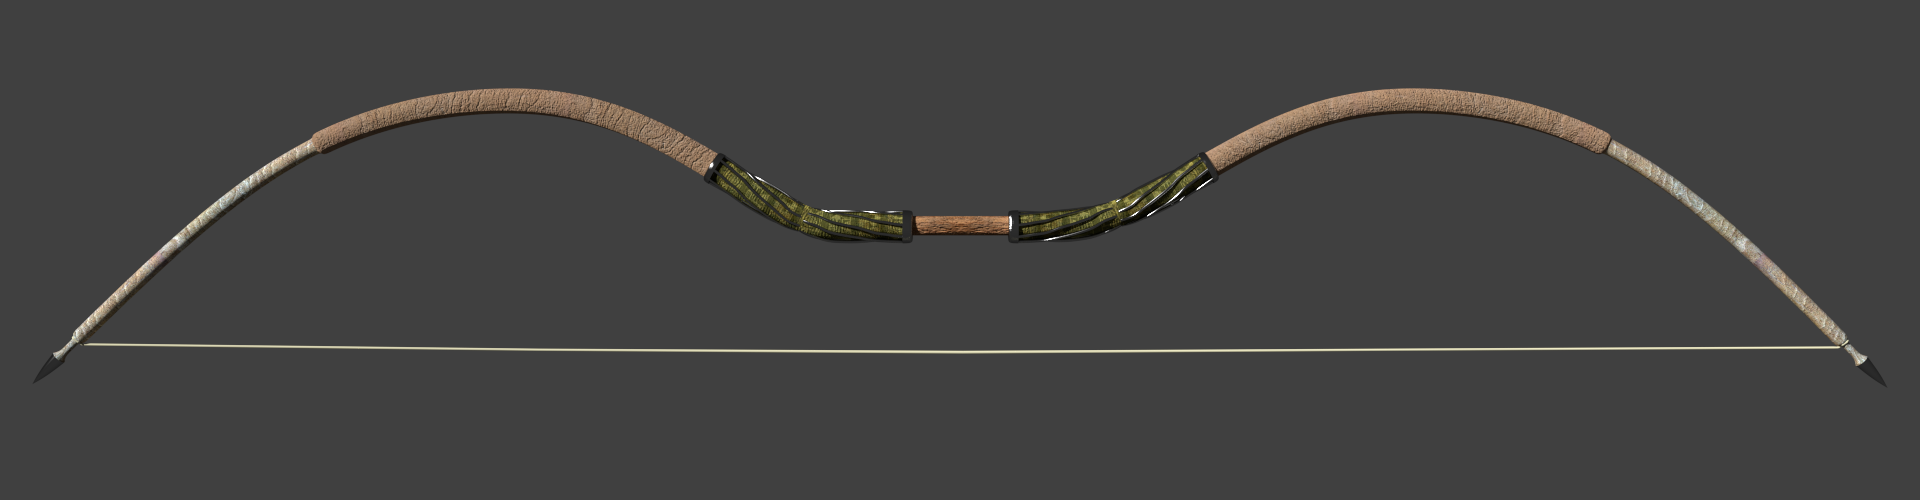 MasterBow6.png